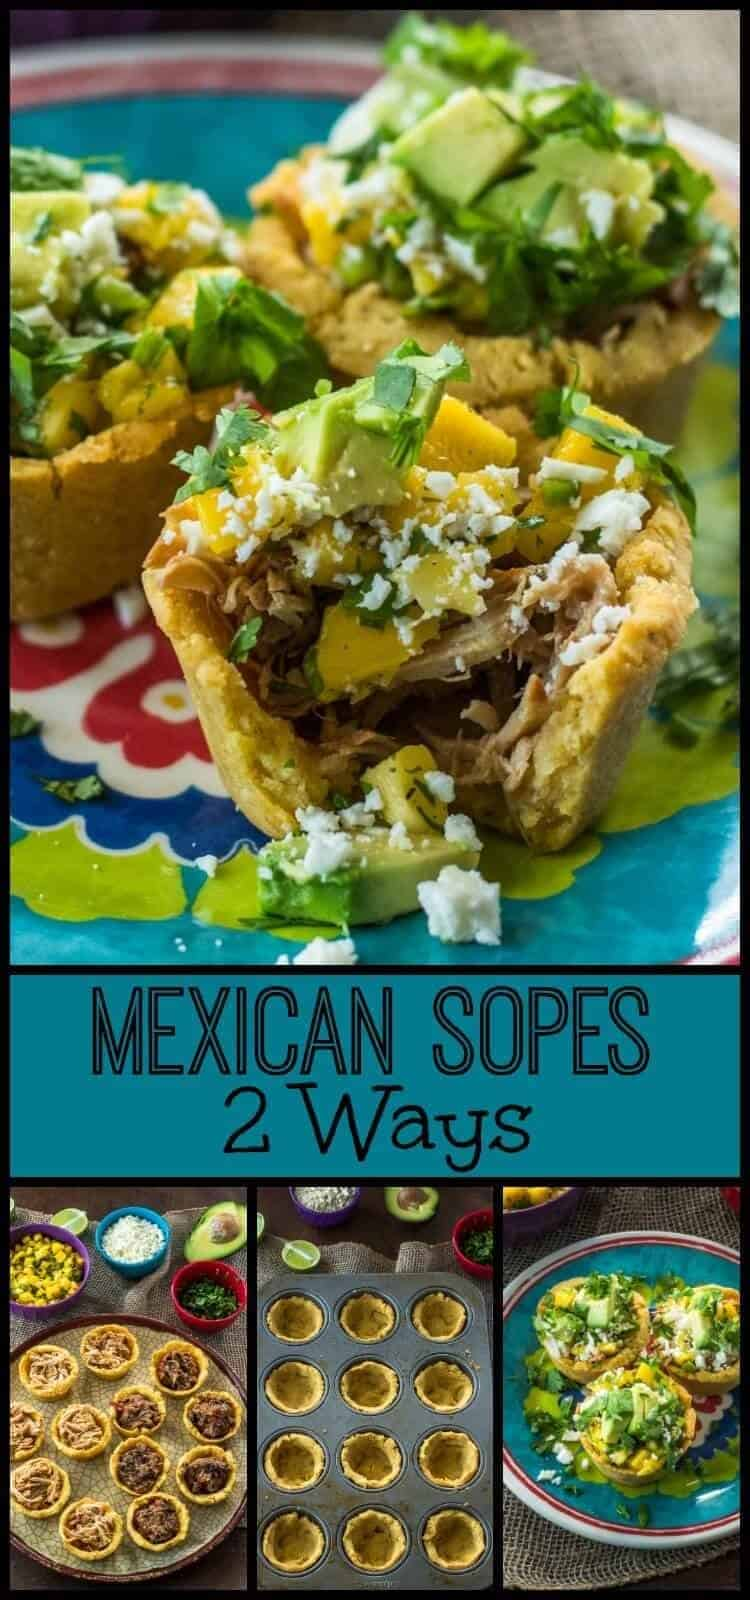 Mexican Sopes 2 Ways -  A sope shell made with masa flour, filled with one of two healthy fillings, and topped with a simple mango salsa and avocado... Mexican Sopes 2 Ways is a perfect antojito (street food) for a party appetizer or a casual main dish! #sopes #healthymexican #BobsRedMill #appetizers #Mexicanfood #masarecipes